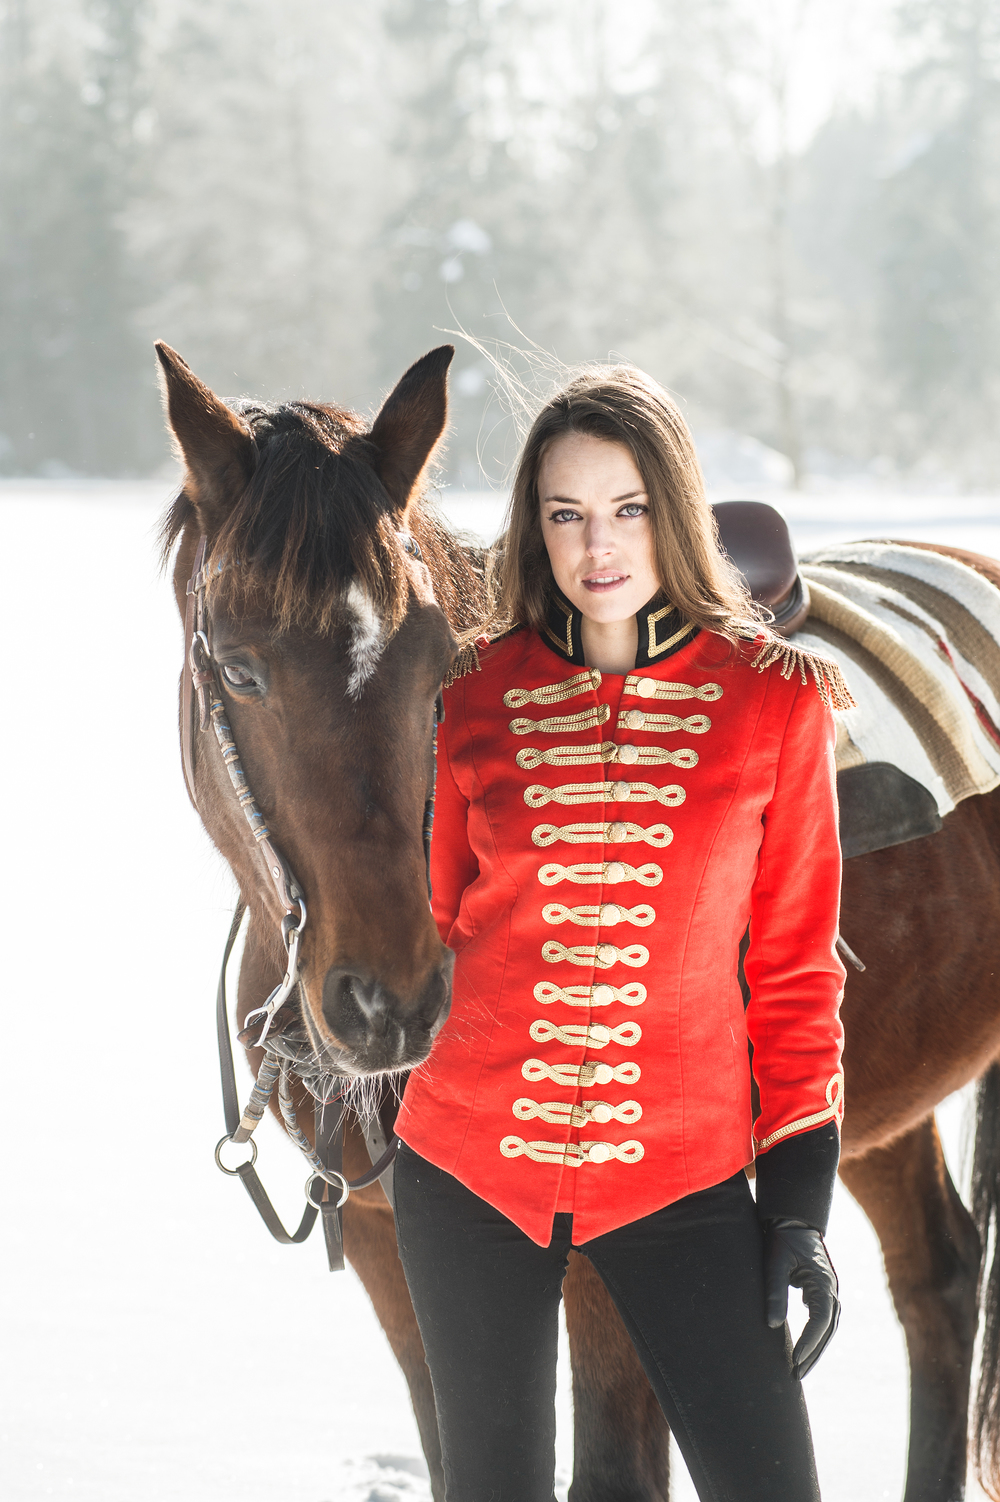 Isabel horse standing red jacket no hat.jpg